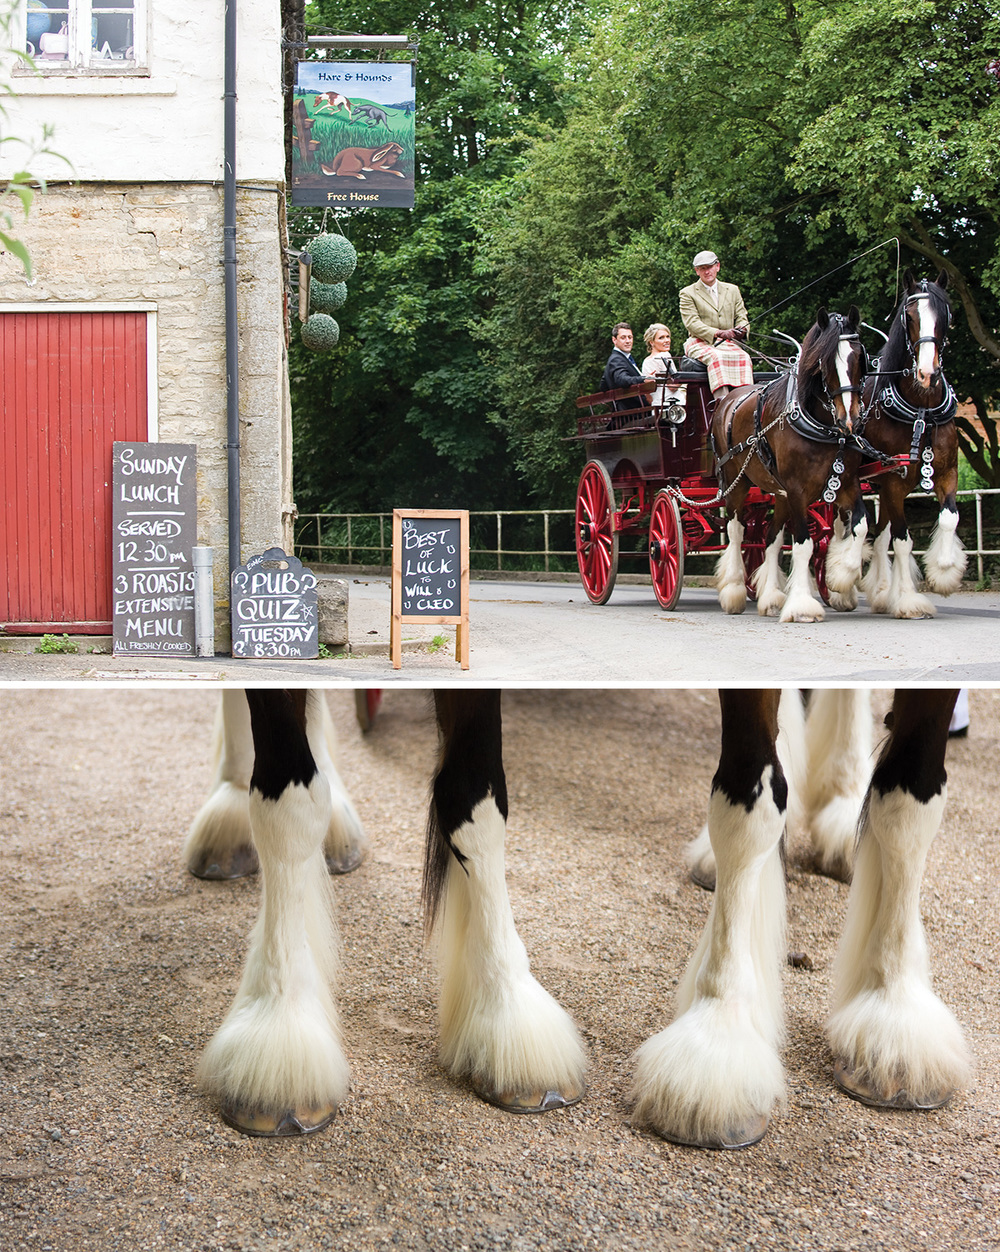 wedding-horse-drawn-carriage.jpg